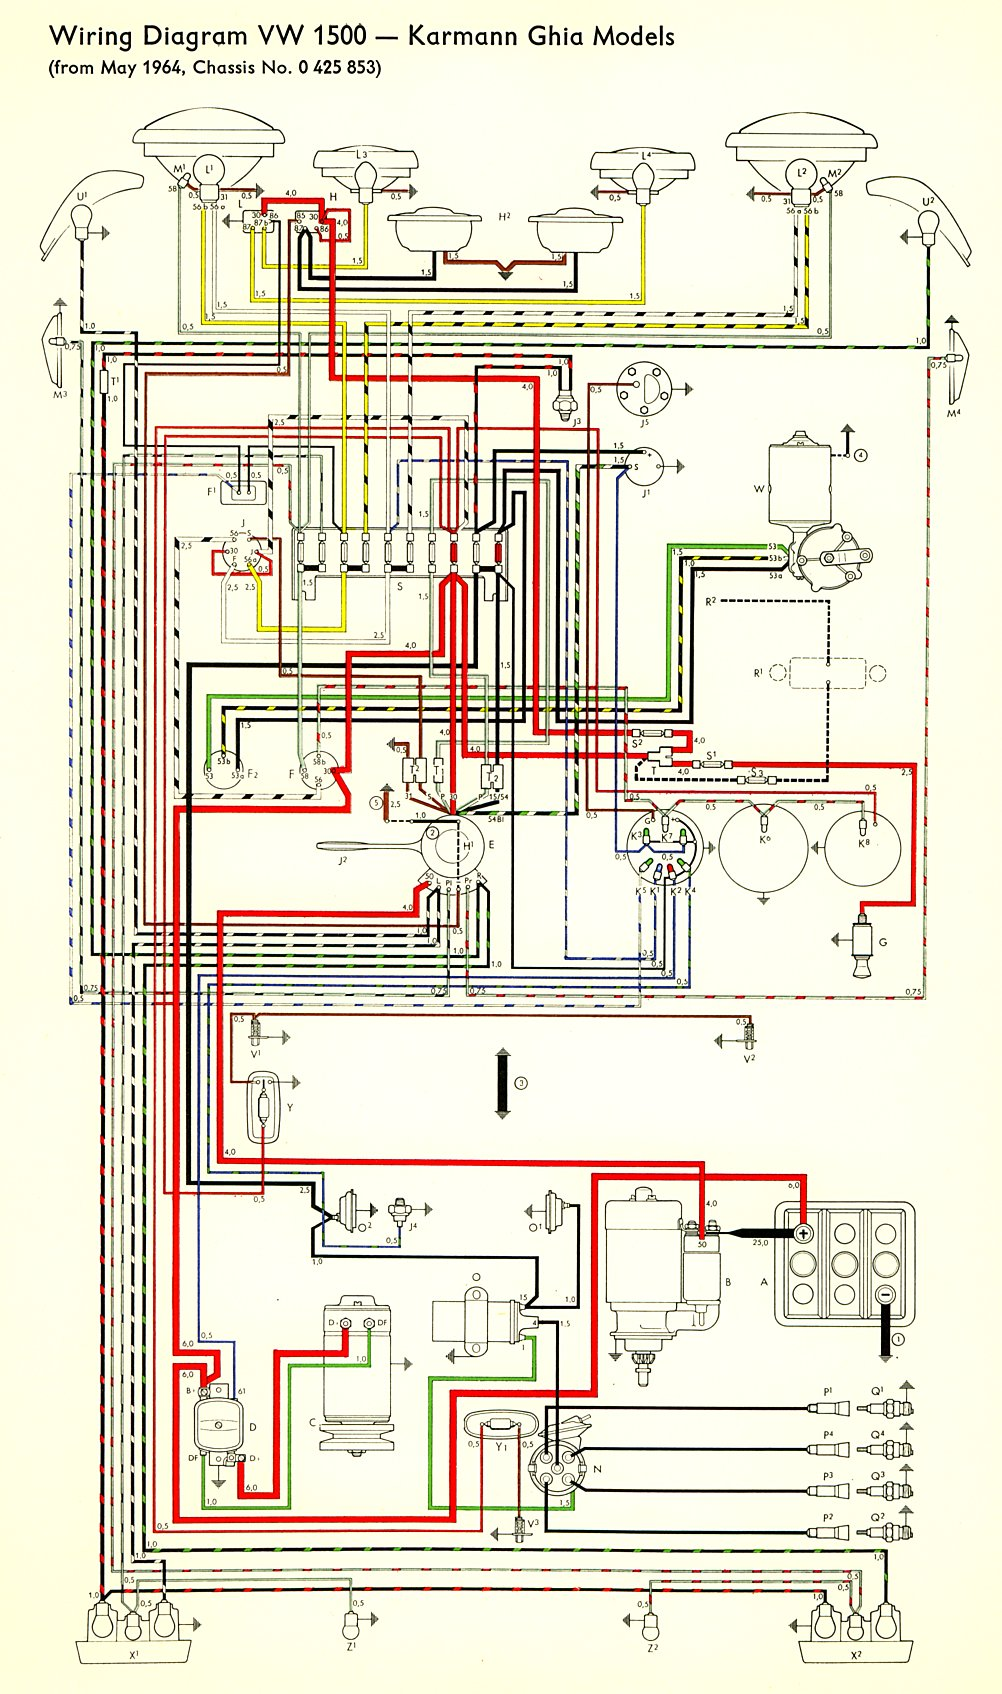 Type 3 Wiring Diagrams 1964 Volkswagen Diagram